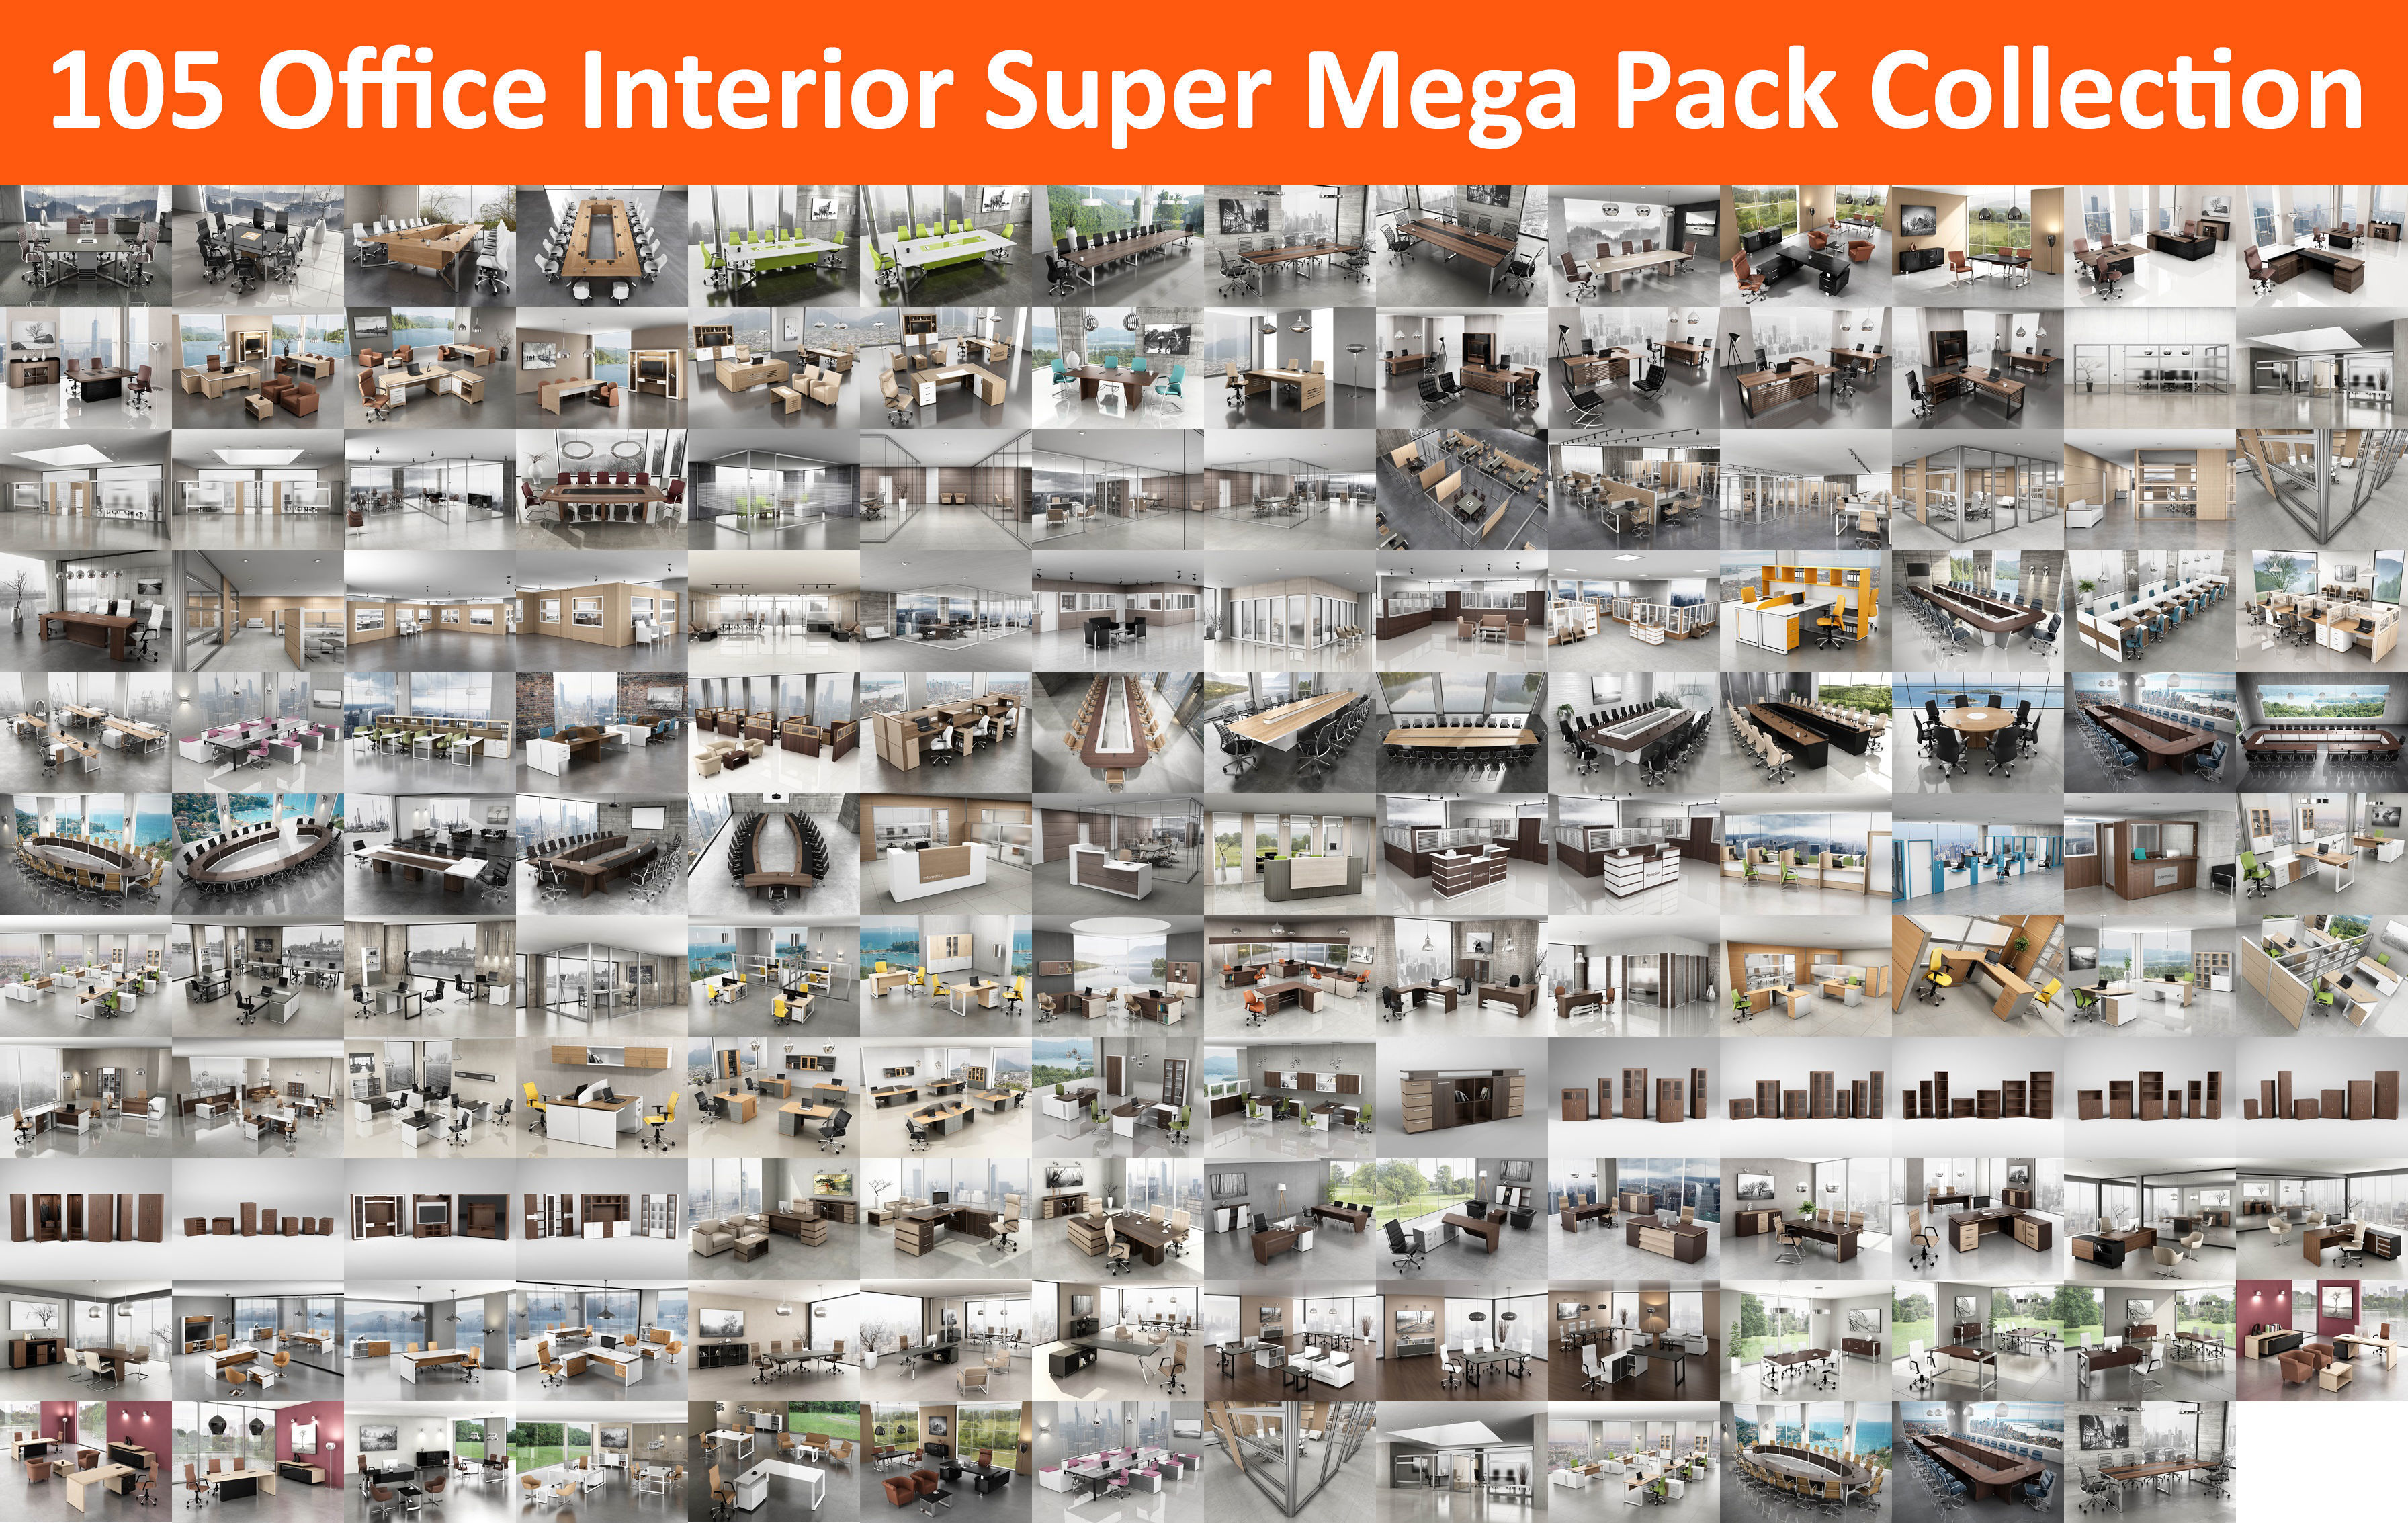 105 Office Interior Super Mega Pack Collection